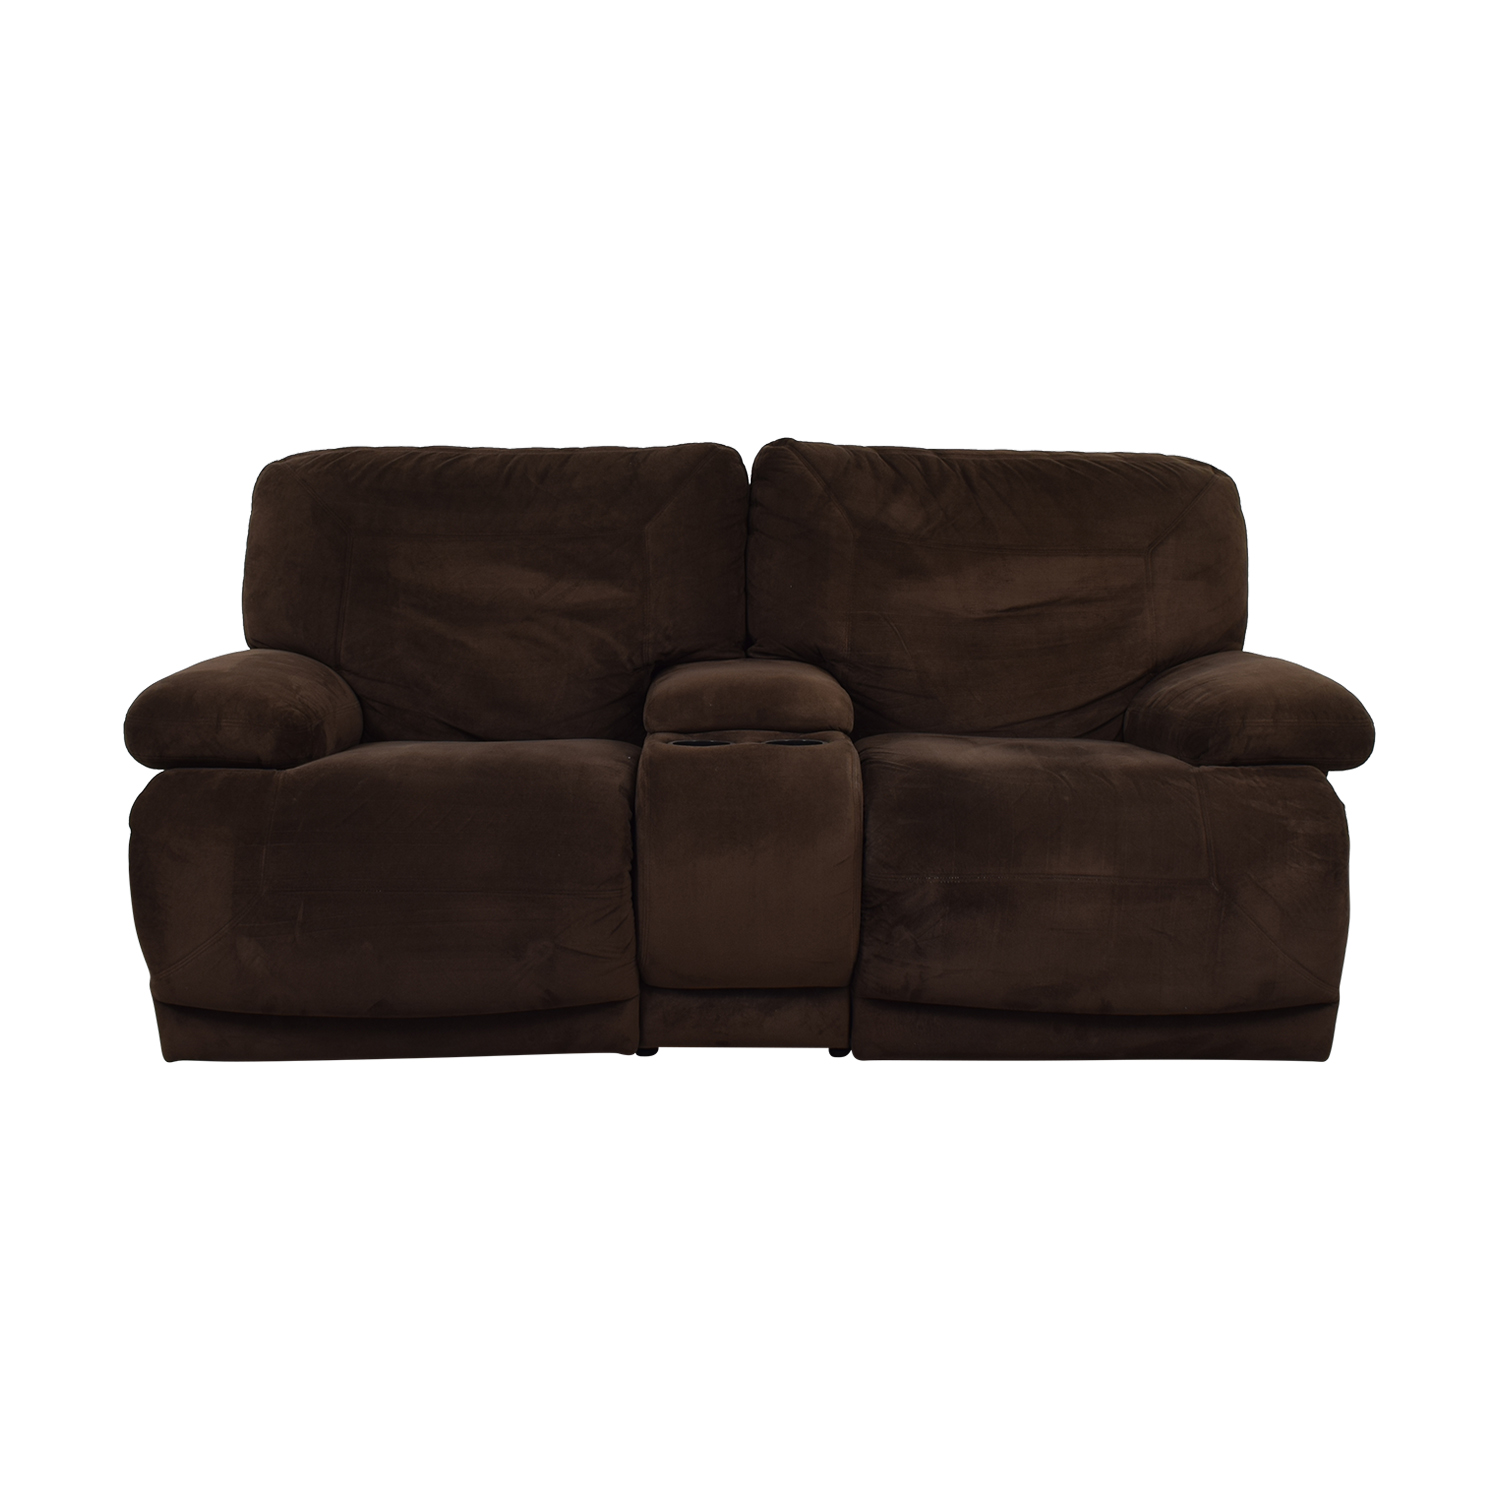 buy Macy's Brown Reclining Loveseat Macy's